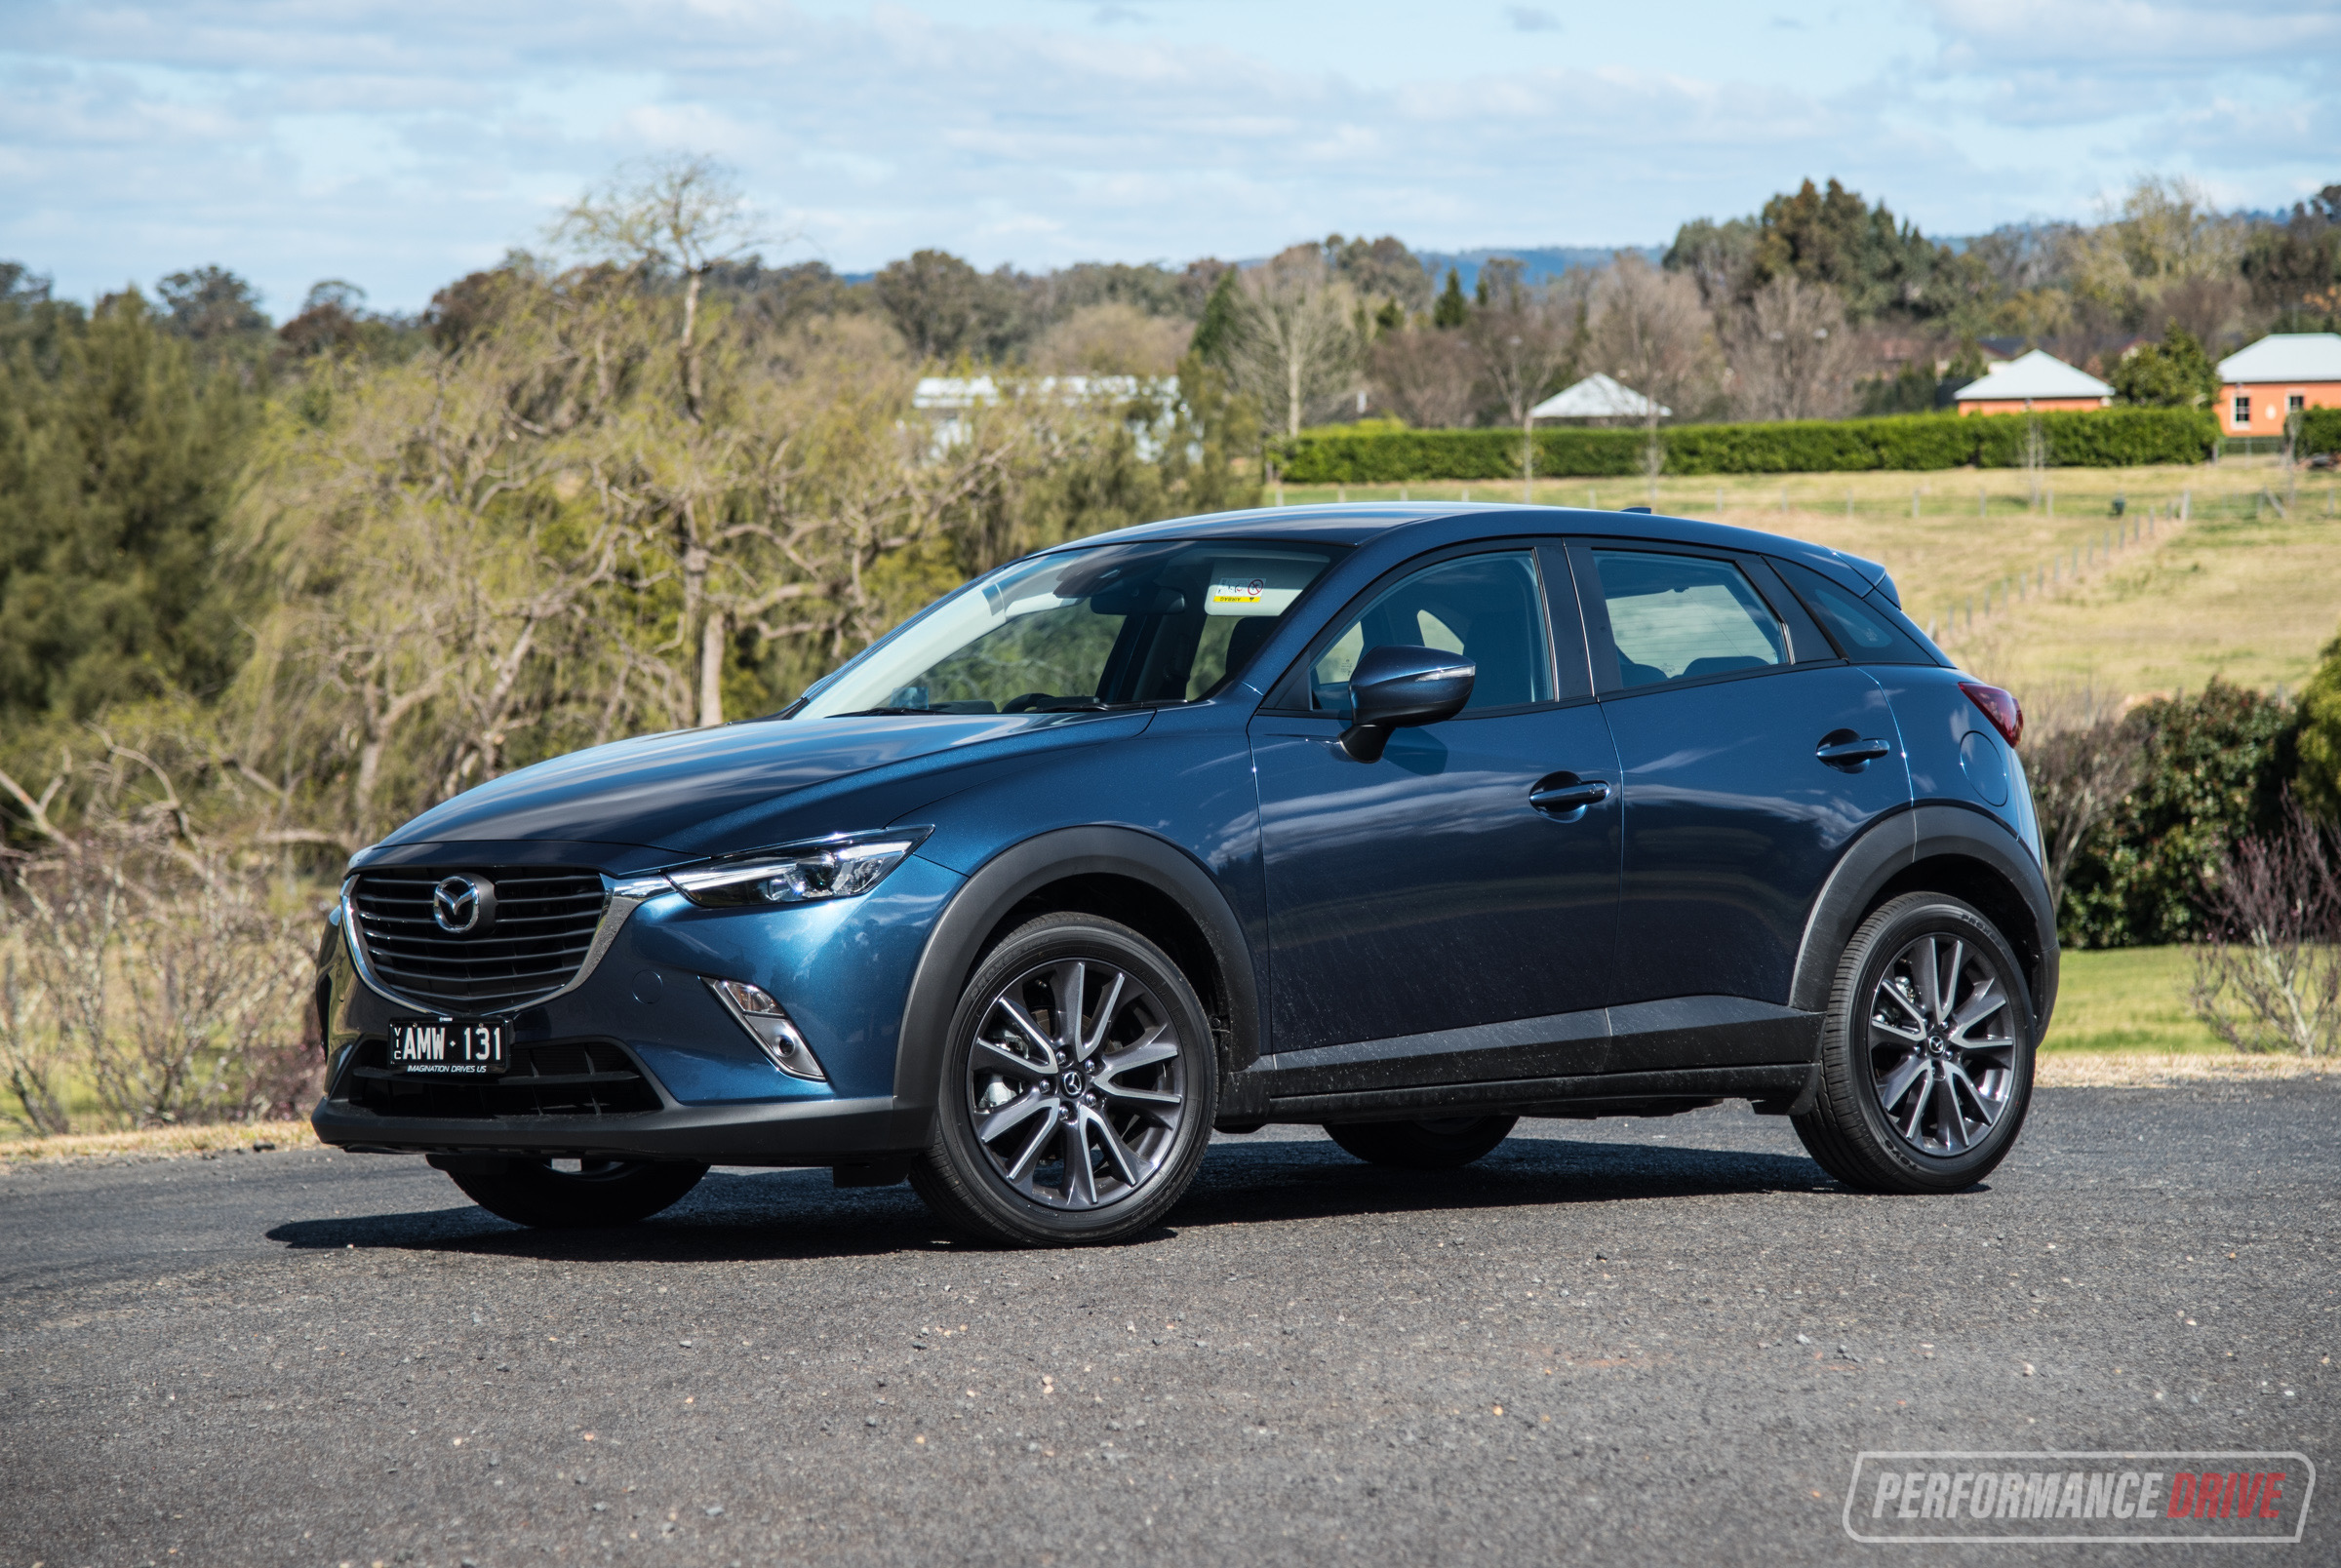 2017 Mazda Cx 3 Stouring Awd Review Video Performancedrive